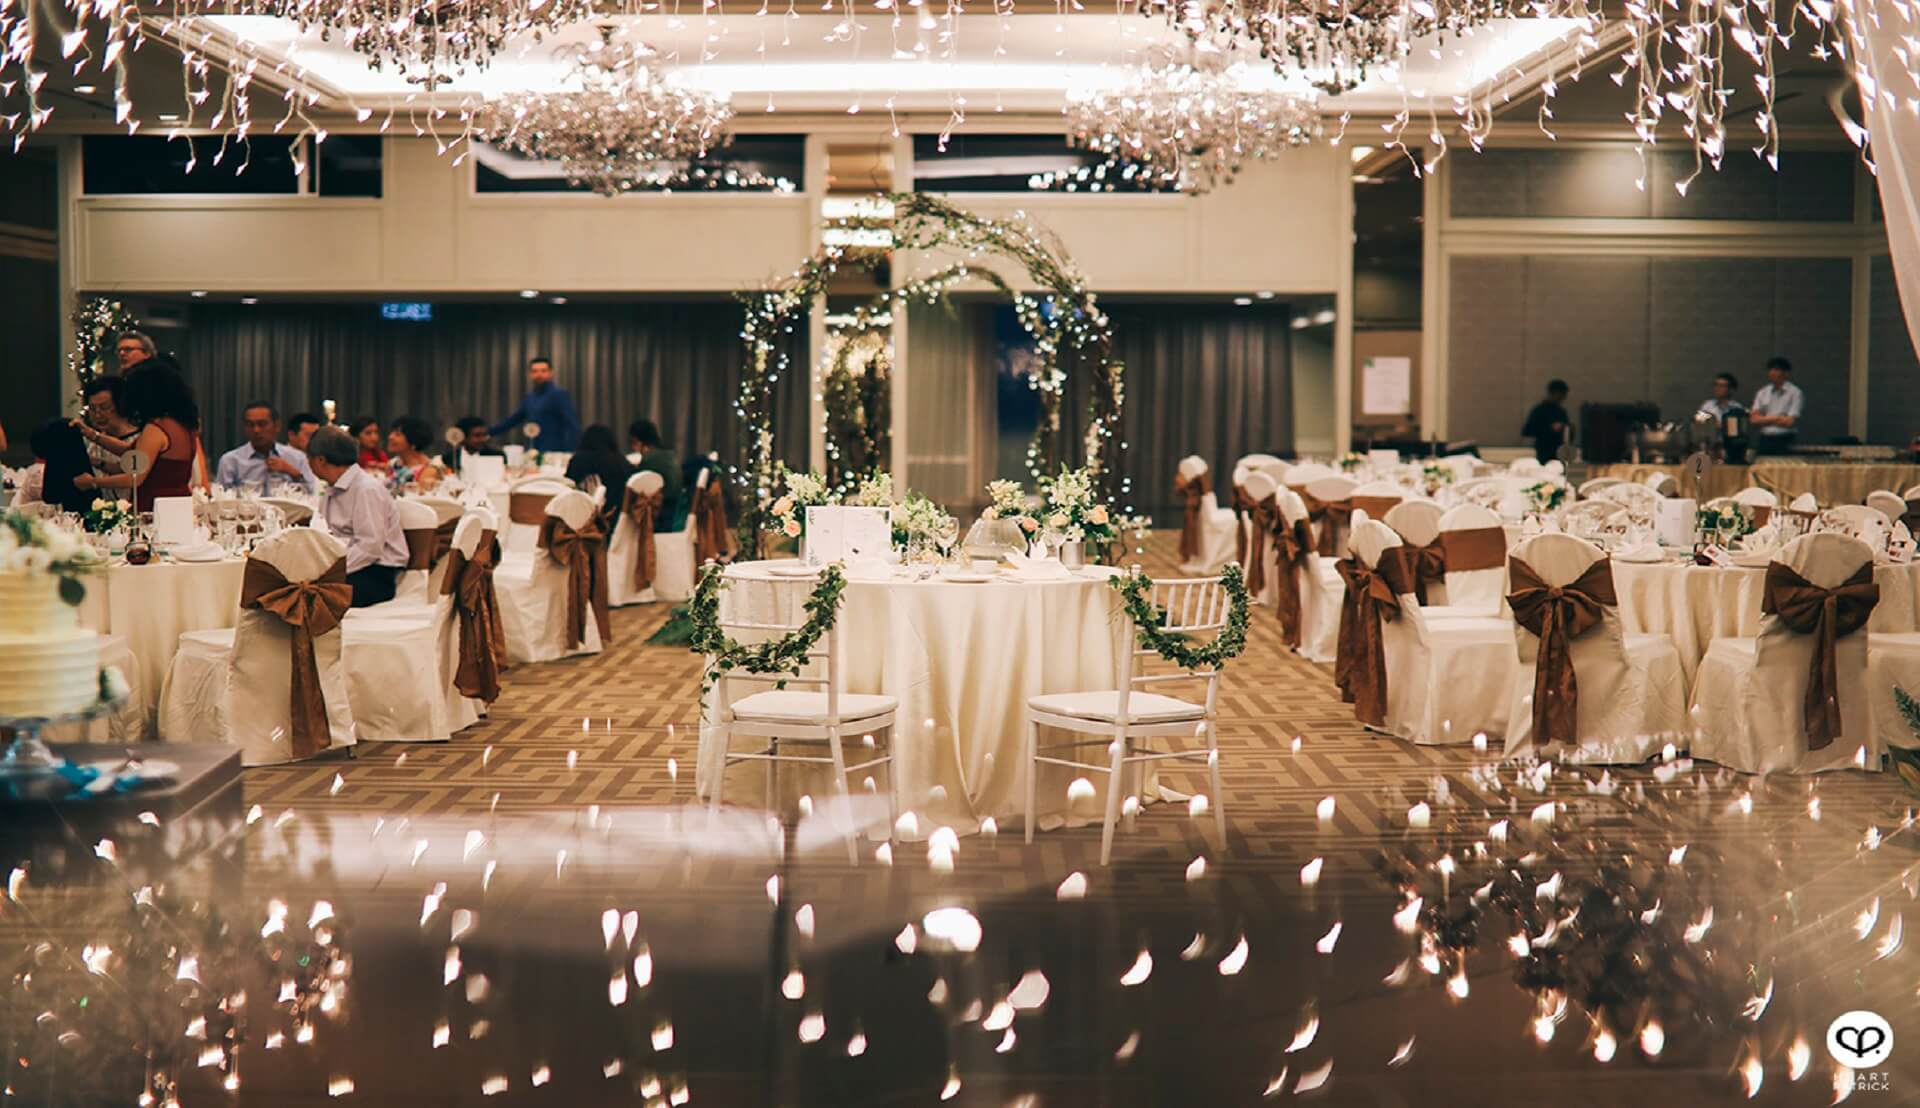 Sugar & Spice Events - Wedding reception hall decorations and table setting